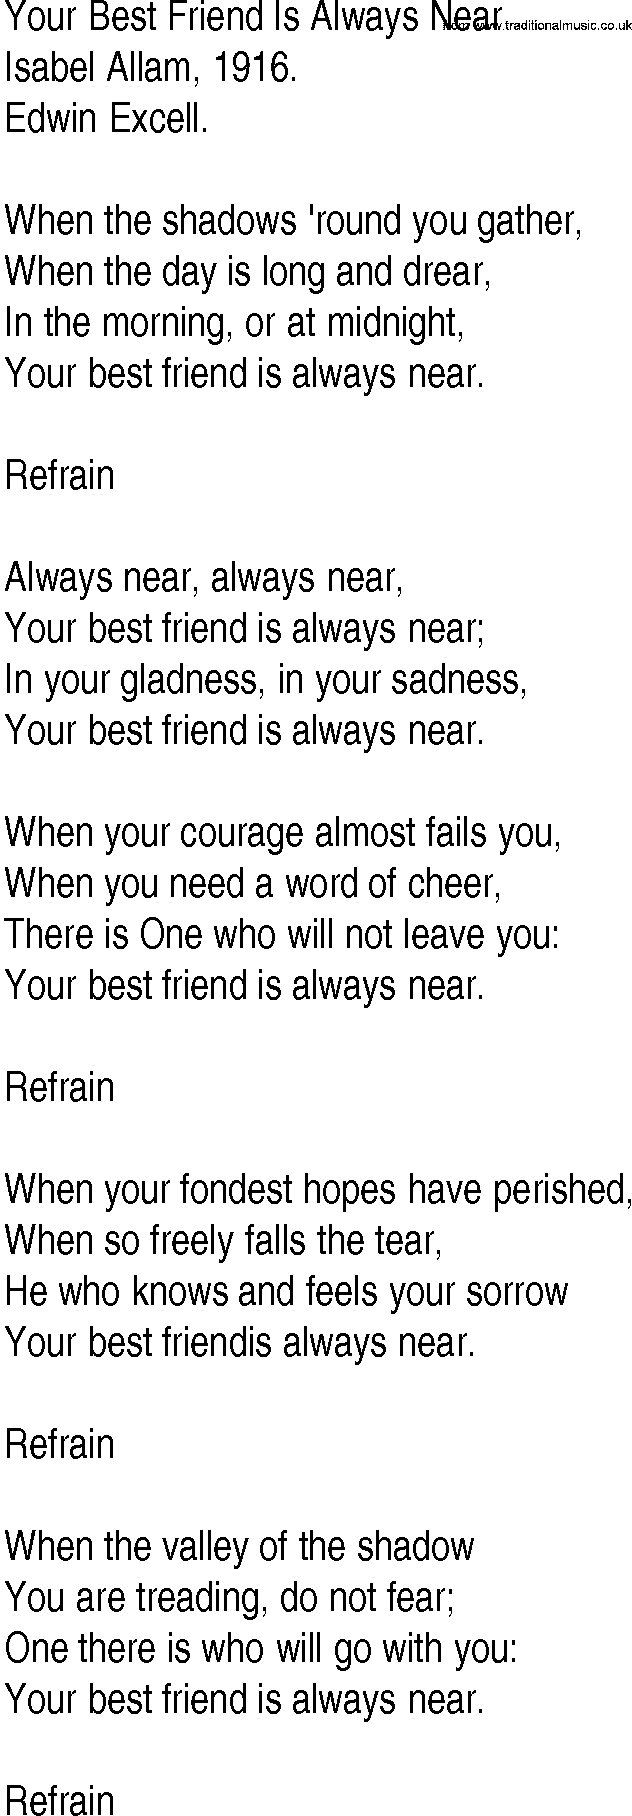 Songs about your best friend